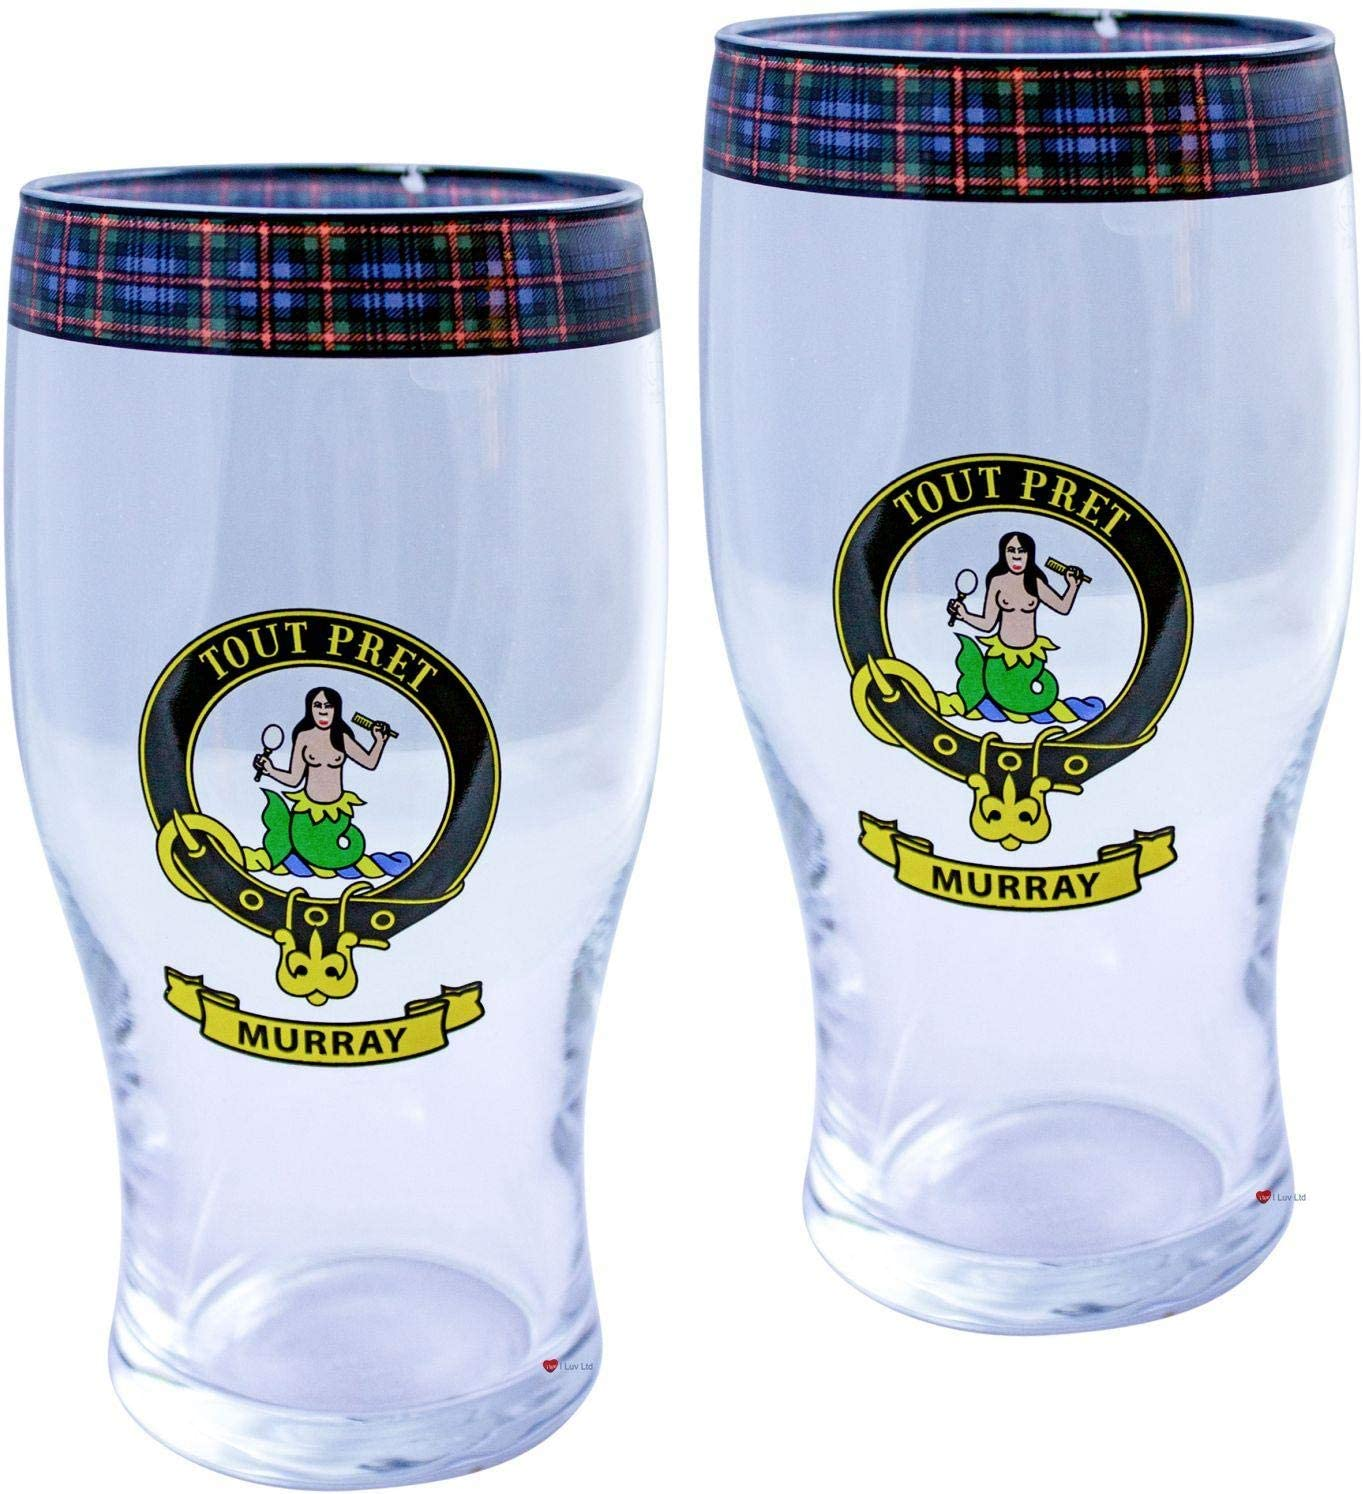 I service LUV LTD Murray Clan Traditional Set Pint Scottish Max 70% OFF Glasses Beer